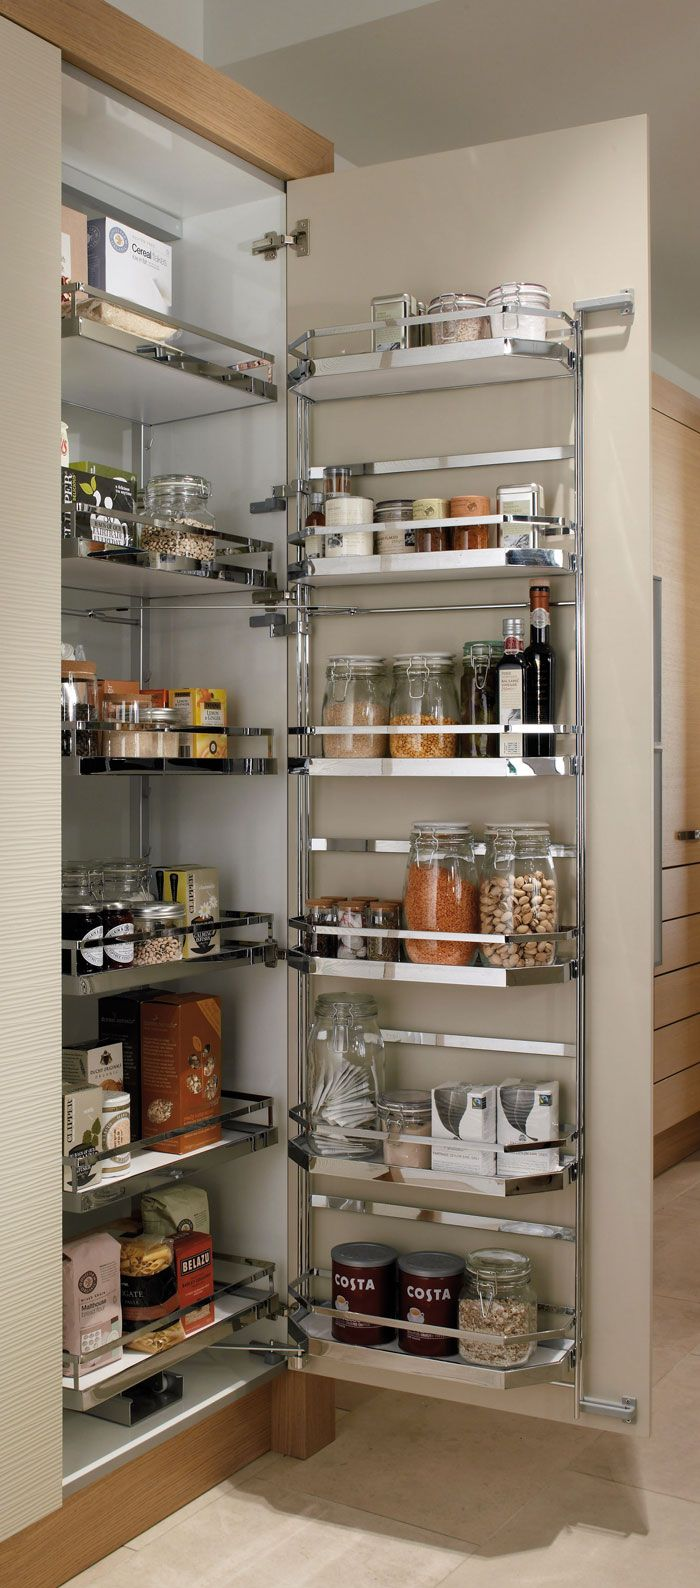 Making Hidden Storage in Your Kitchen: Modern hidden storage#lglimitlessdesign #contest